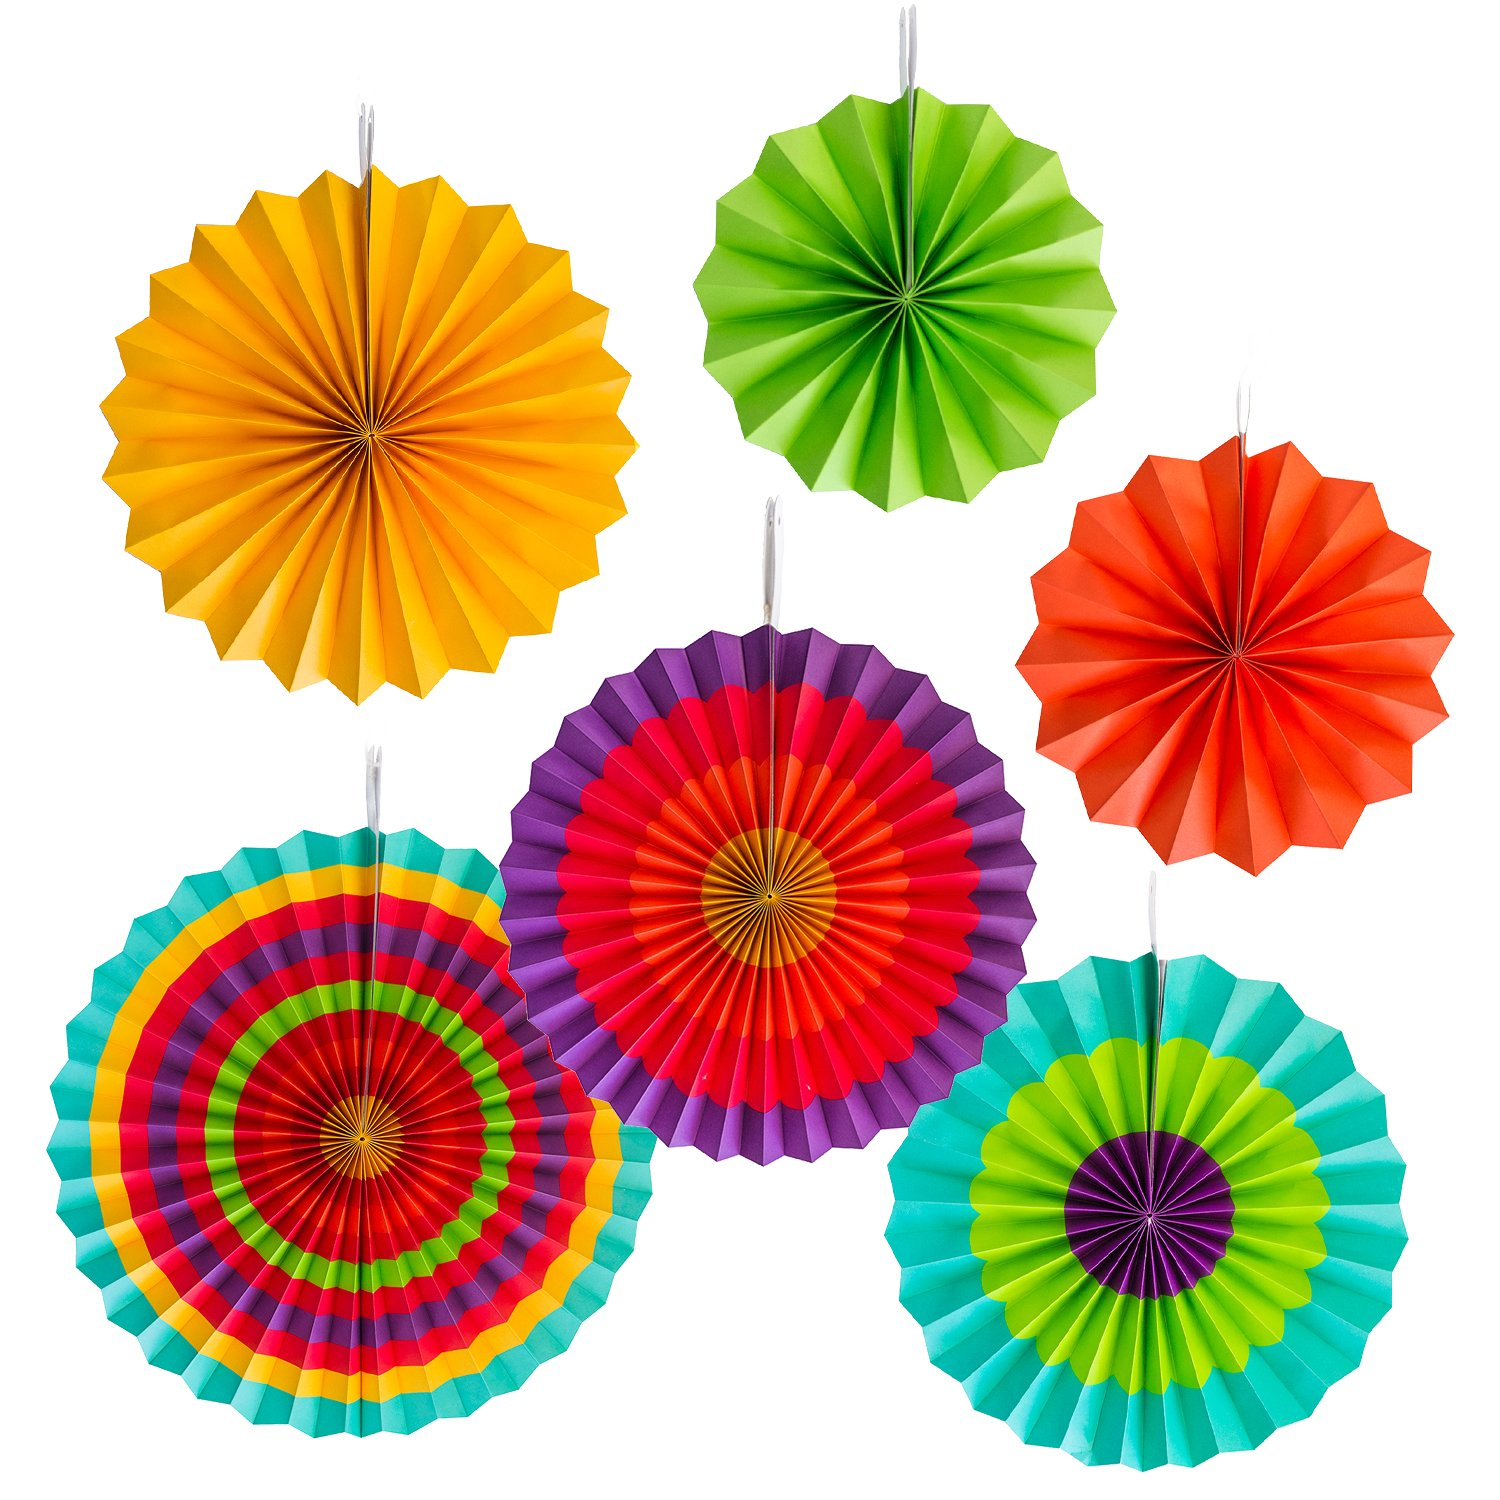 amazon com fiesta colorful paper fans round wheel disc amazon com fiesta colorful paper fans round wheel disc southwestern pattern design for party event home decoration set of 6 toys games